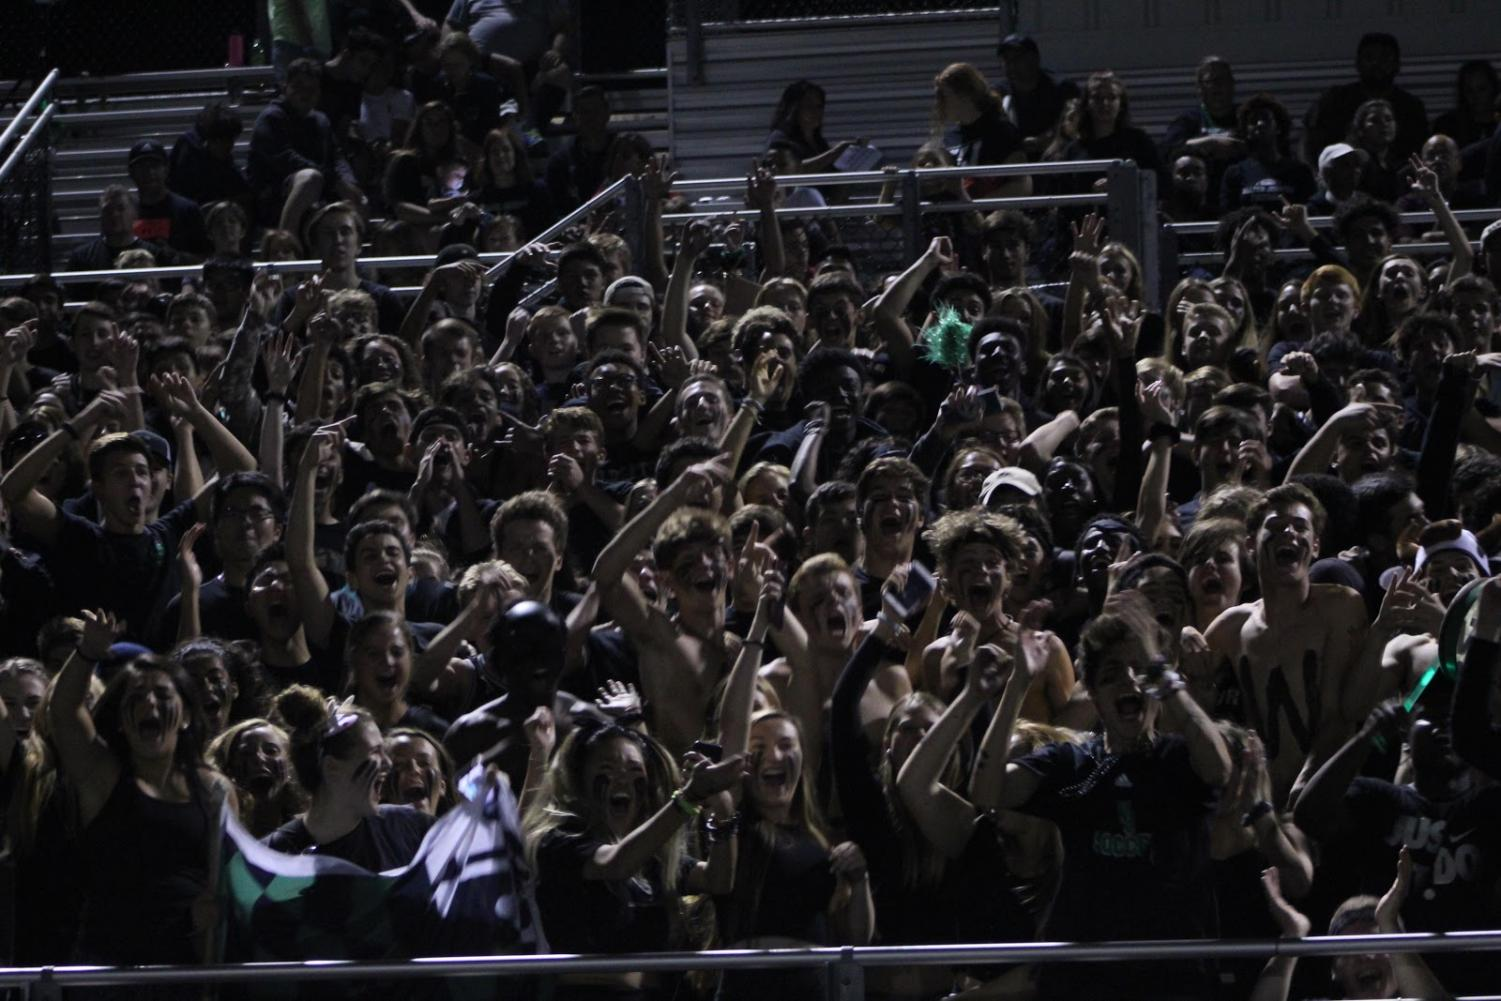 During football games, the seniors and juniors all cram together in the senior section. Seniors have repeatedly told juniors to wait their turn.